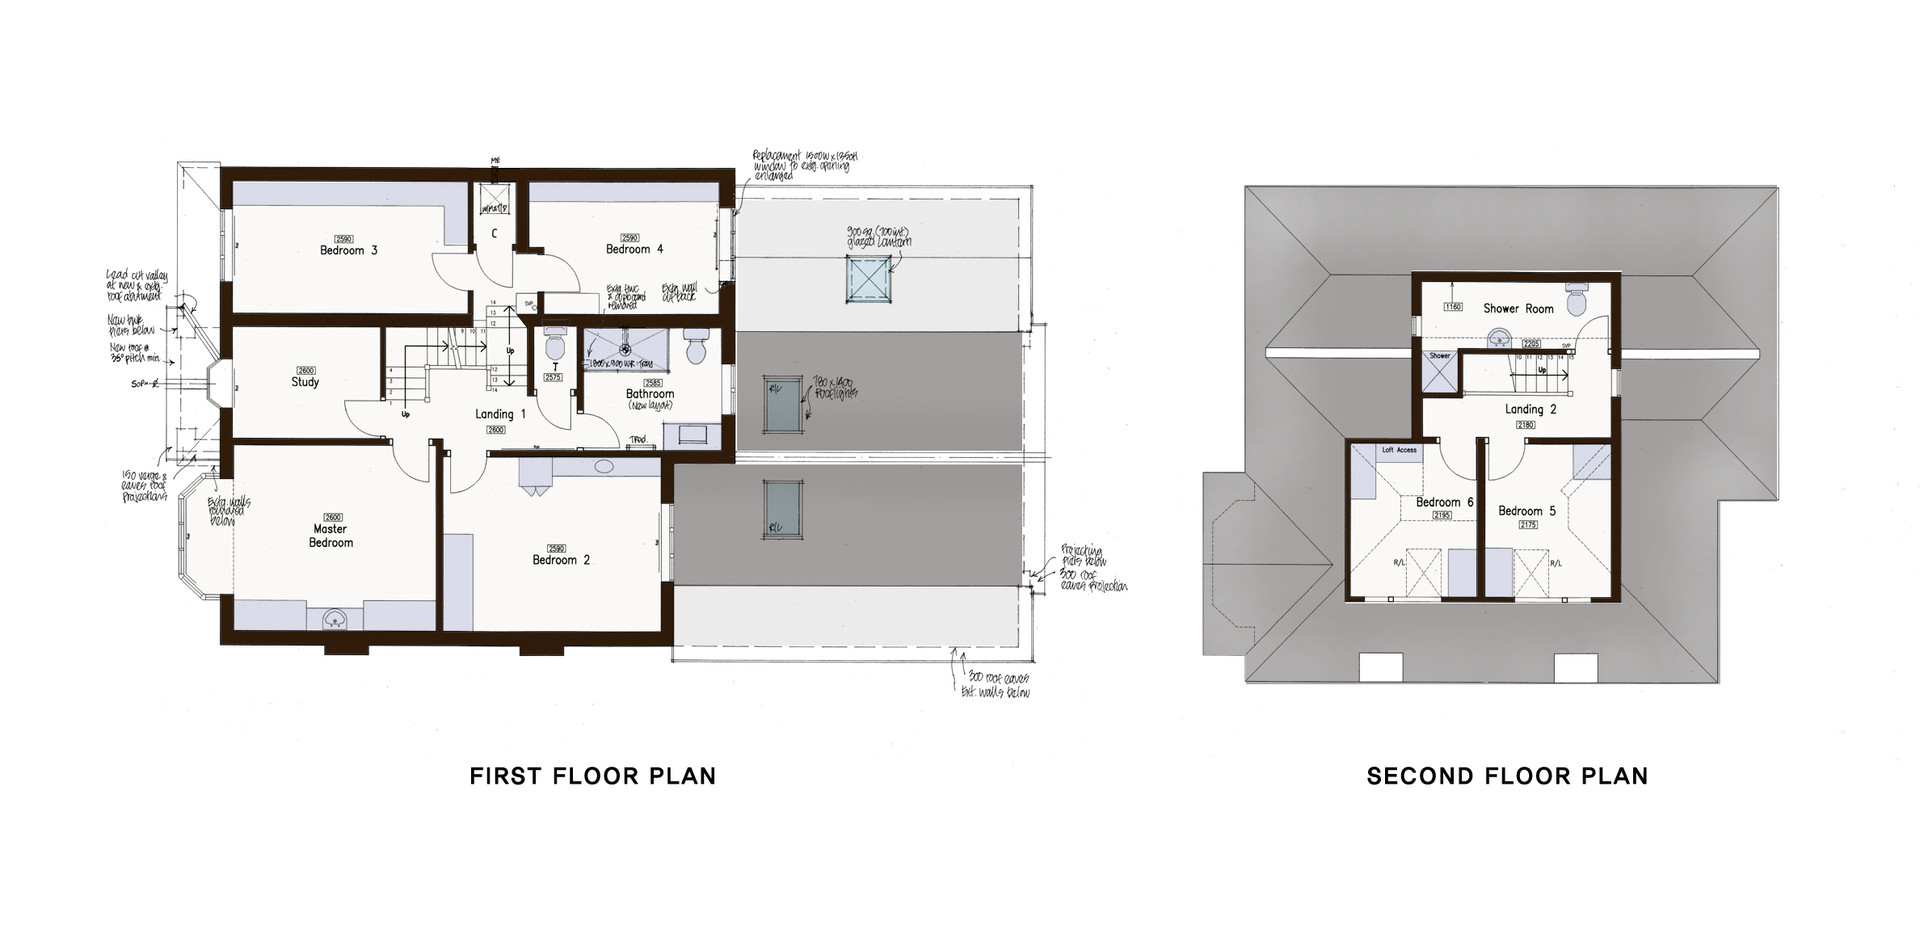 04 First and Second Floor Plan.JPG